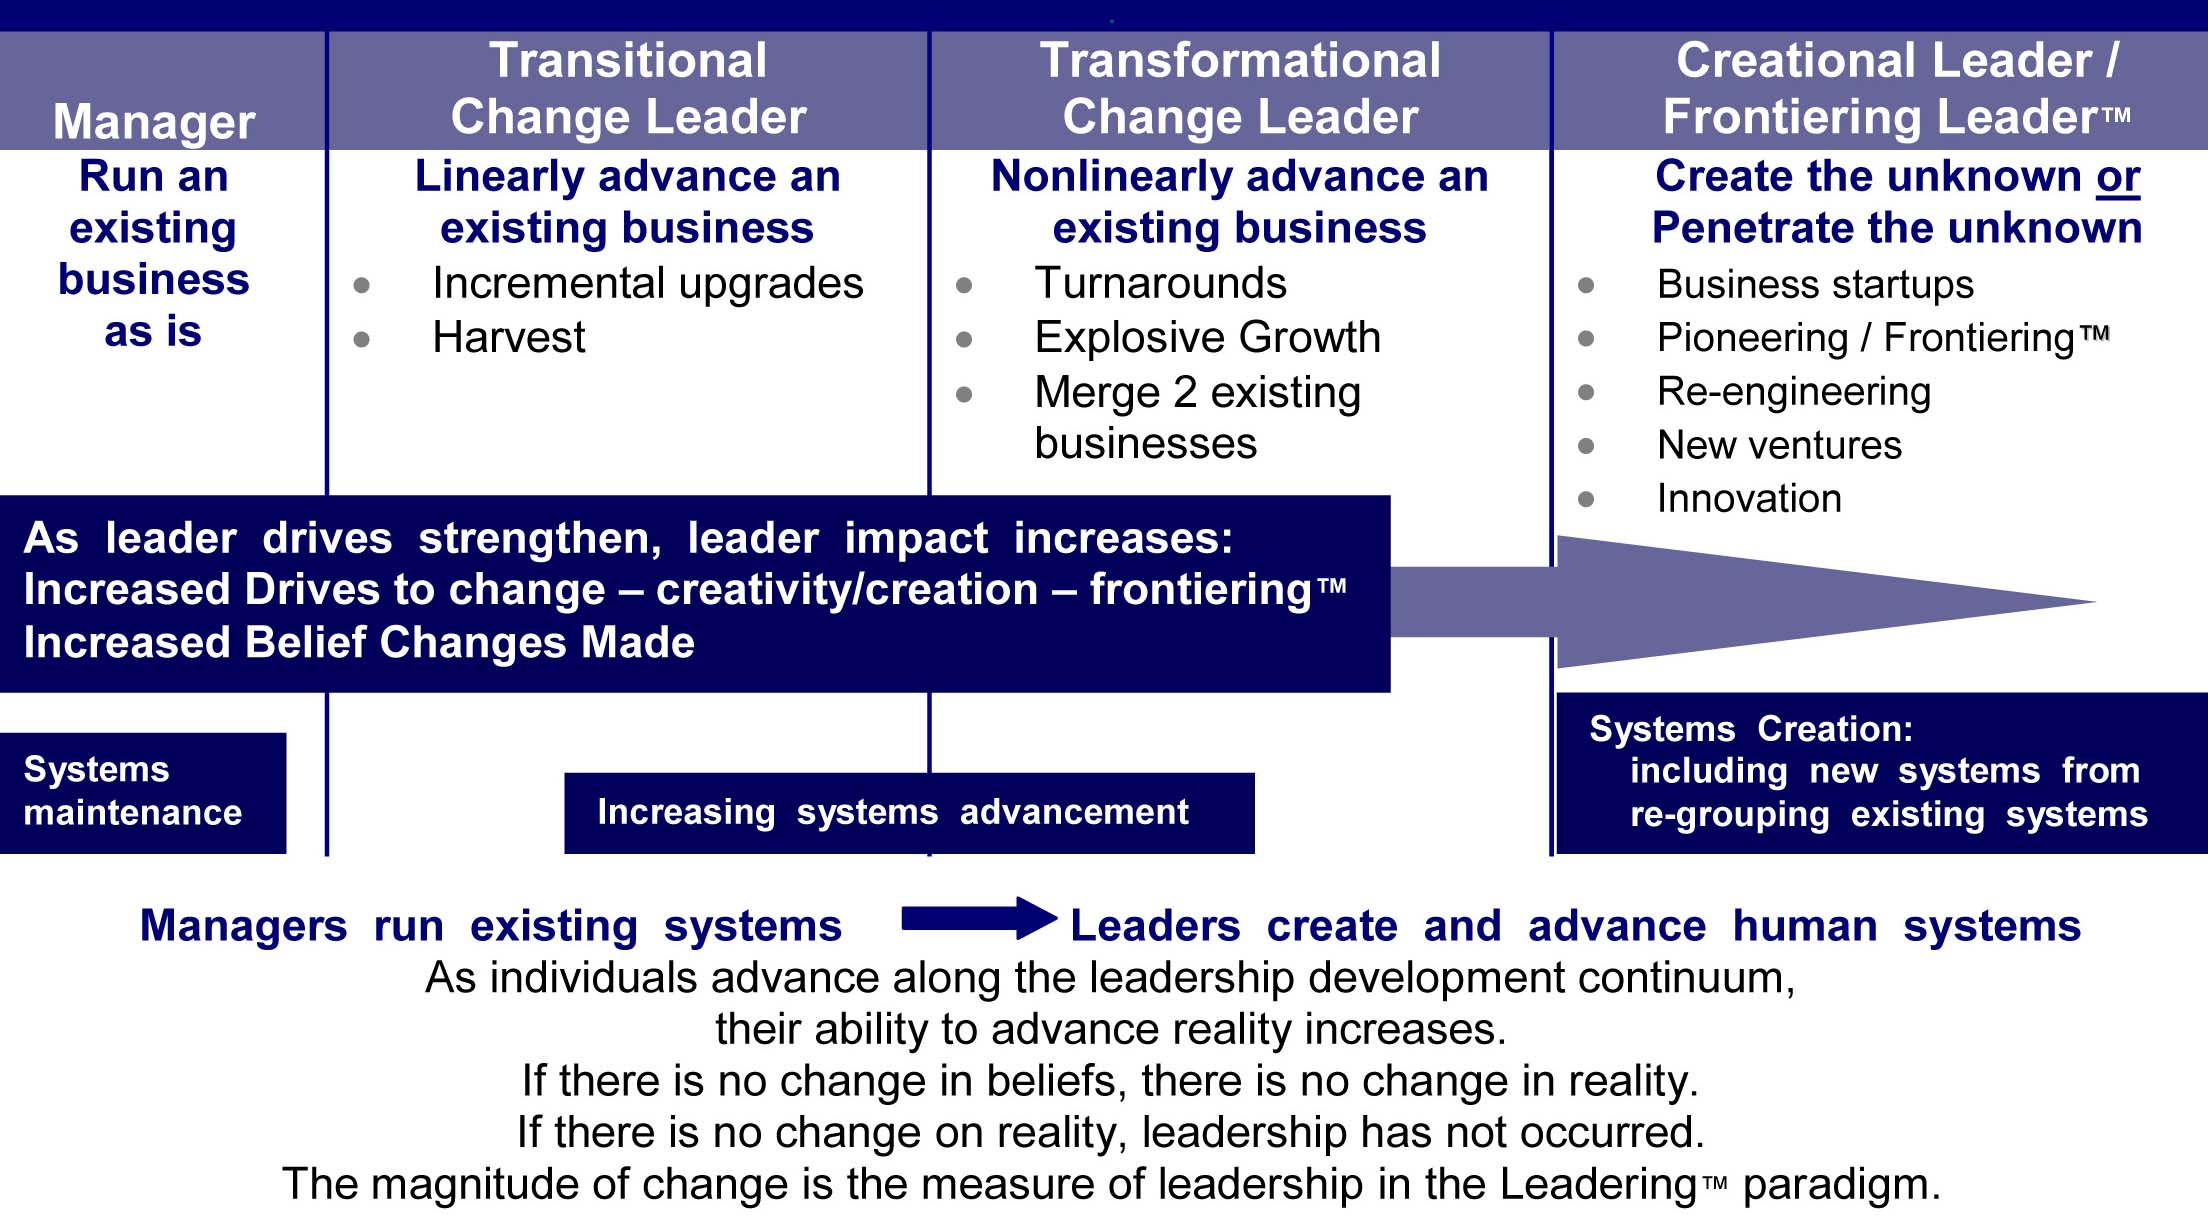 Leadership  and  Frontiering  Development  Continuum